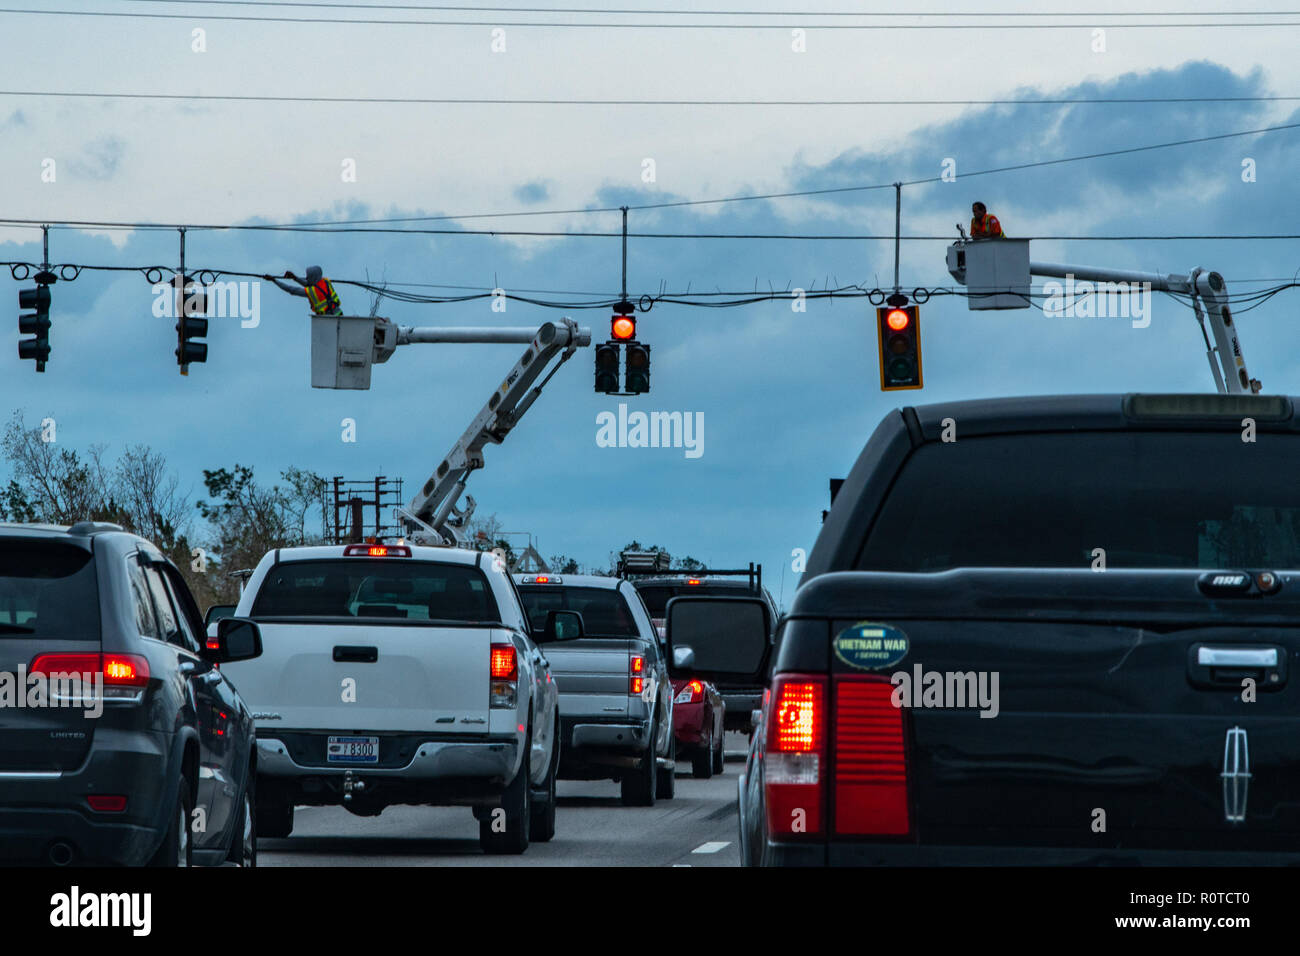 Panama City, FL., Nov. 2, 2018--Utility workers restore power to traffic lights in the Florida Panhandle after Hurricane Michael struck on October 10, as a Category 4 hurricane, packing 155 mph winds. FEMA/K.C. Wilsey Stock Photo